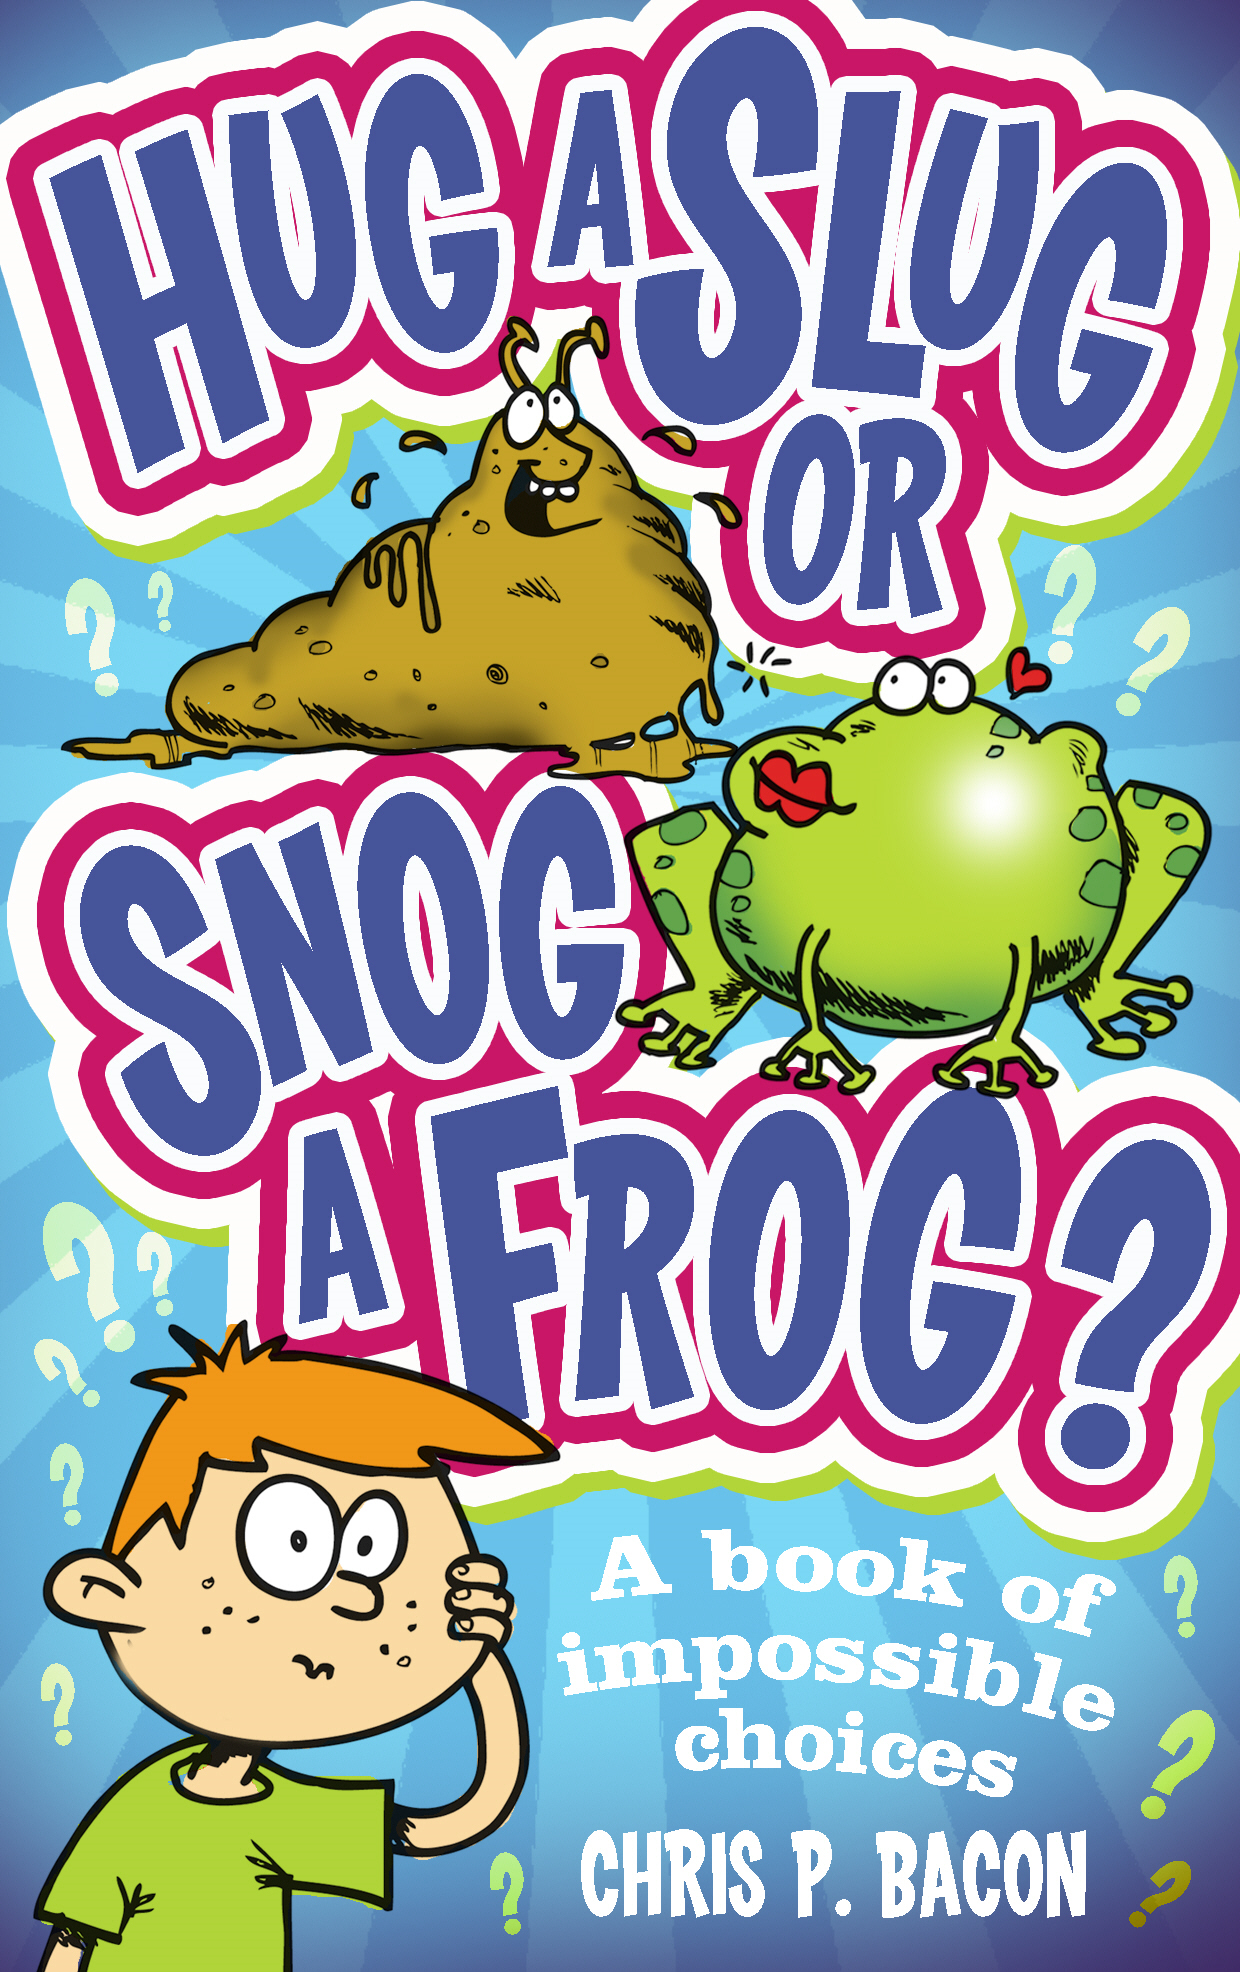 Hug a Slug or Snog a Frog? A book of impossible choices